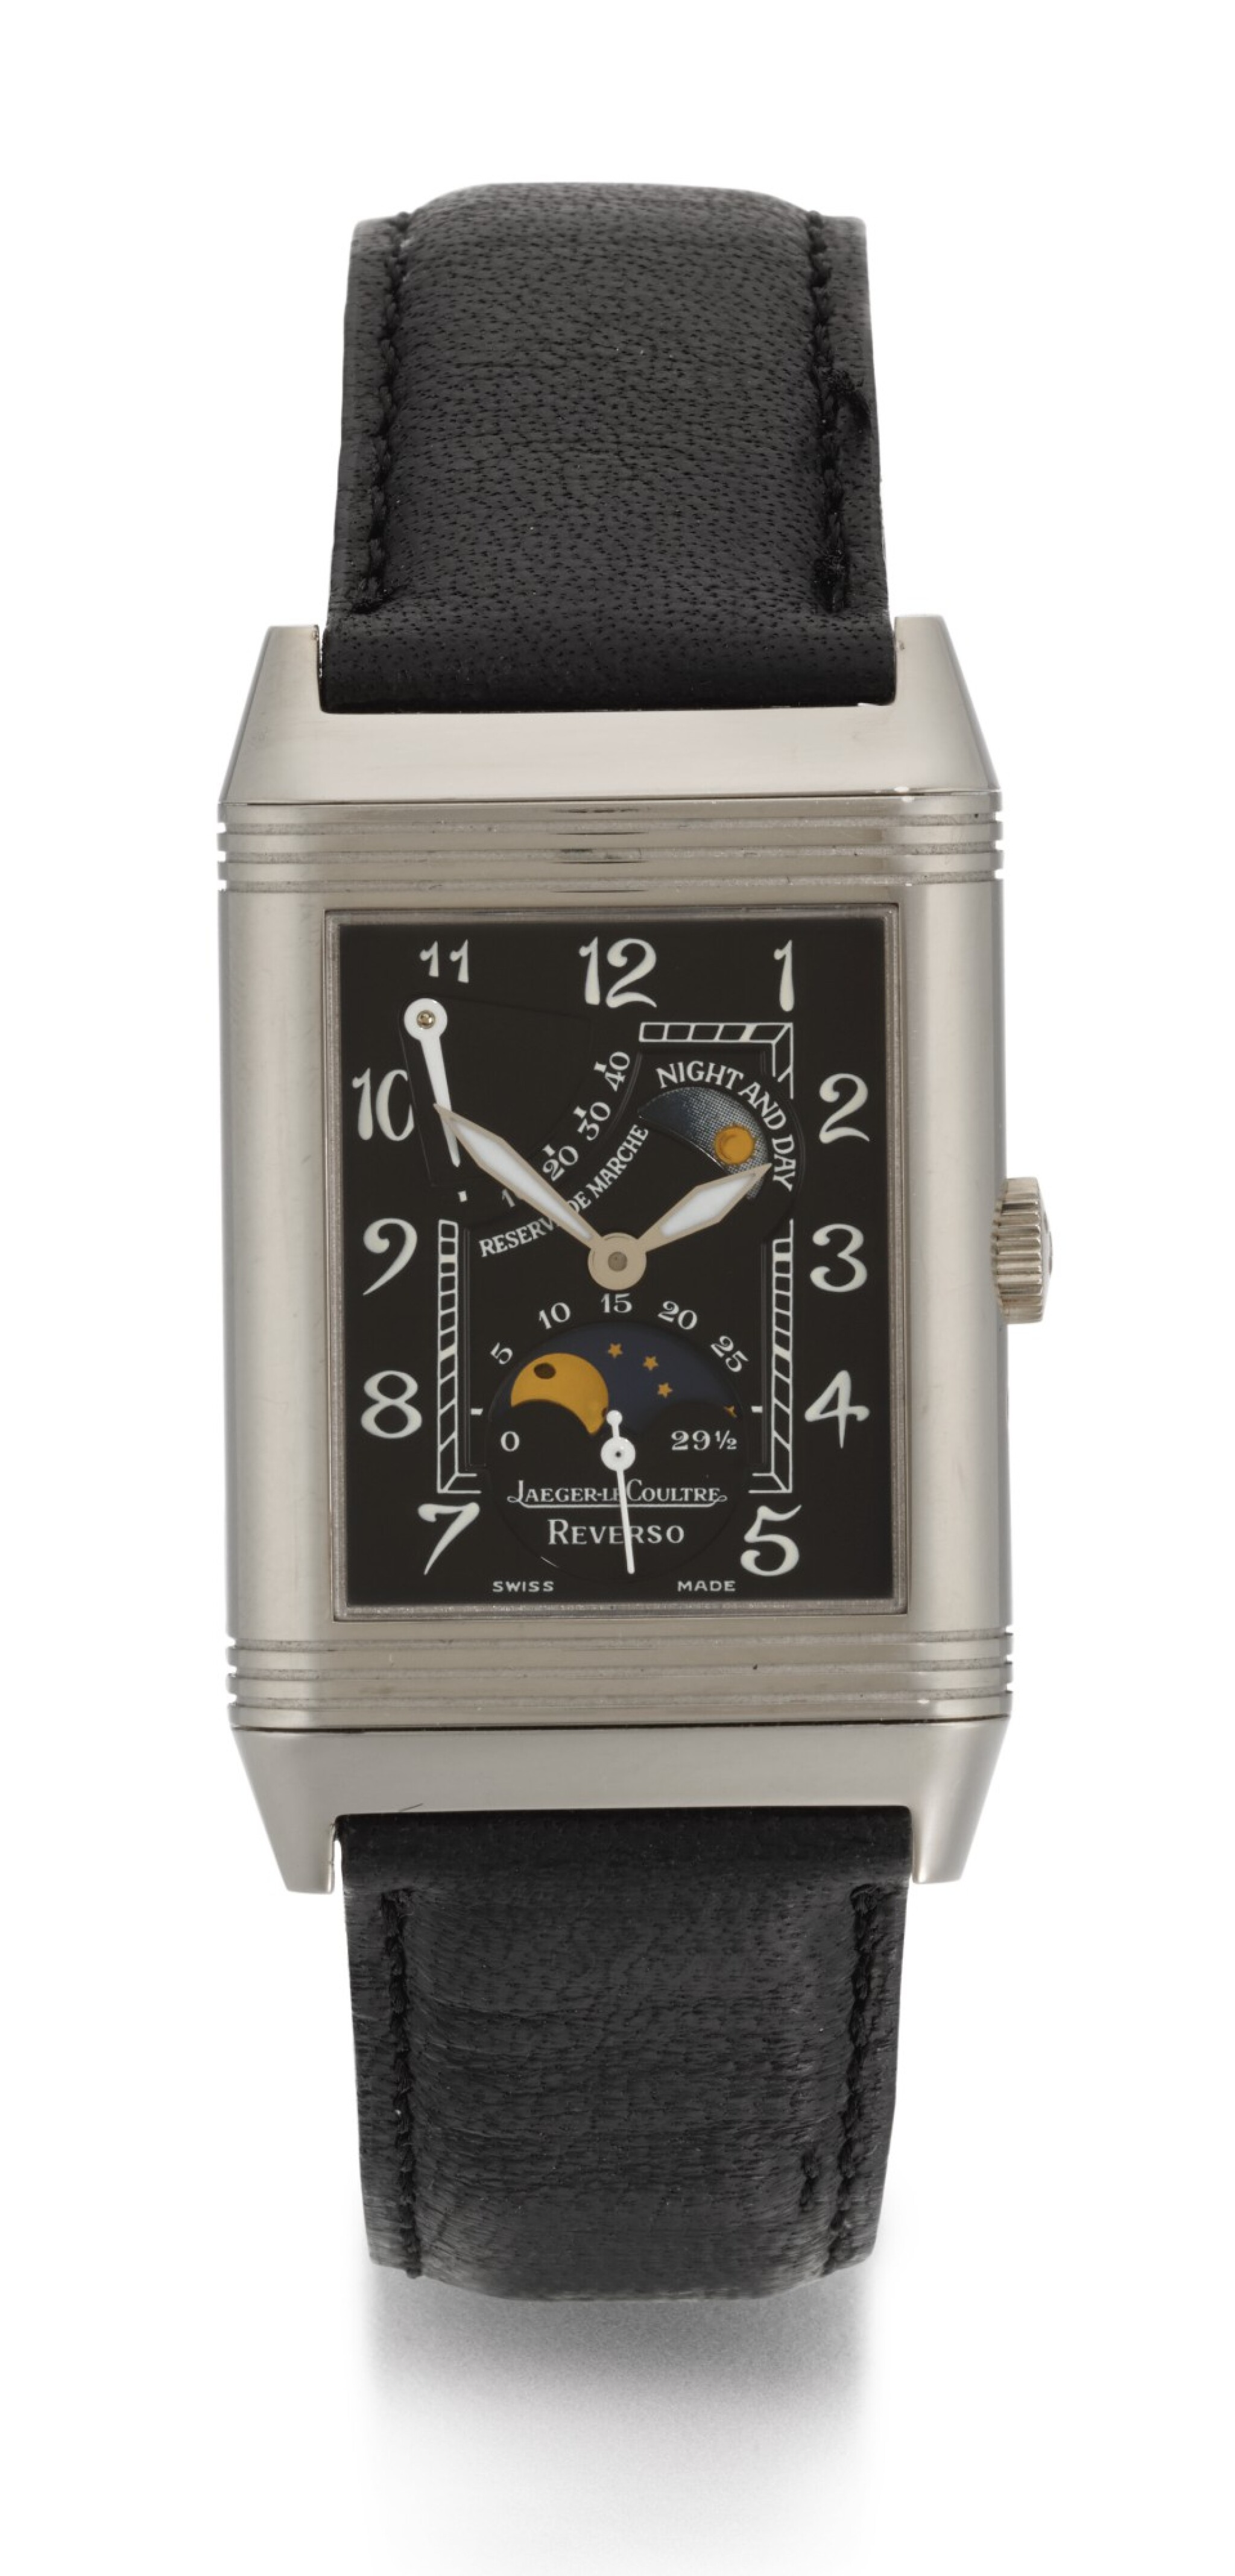 View full screen - View 1 of Lot 21. JAEGER LECOULTRE | REVERSO NIGHT AND DAY, REFERENCE 270.3.63, WHITE GOLD REVERSIBLE RECTANGULAR WRISTWATCH WITH MOON-PHASES, POWER-RESERVE AND DAY/NIGHT INDICATION, CIRCA 2000.